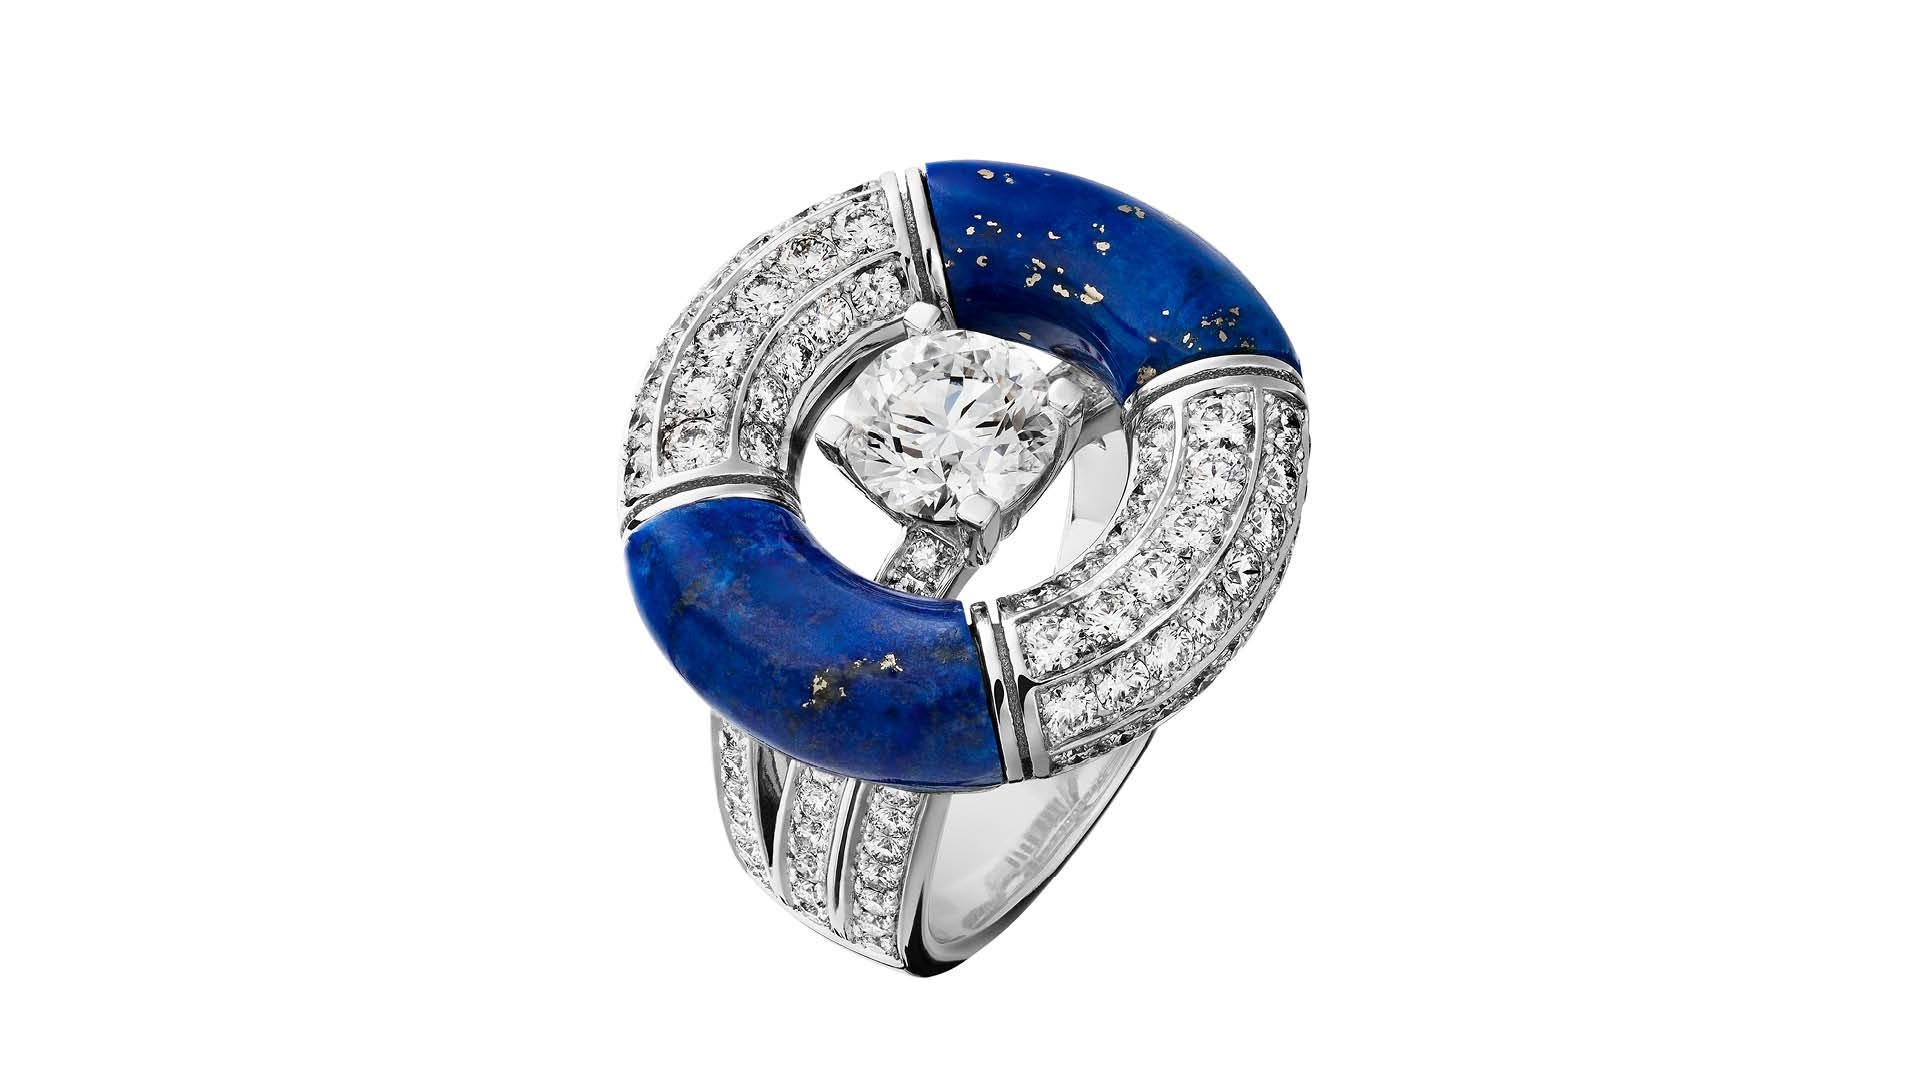 Chanel Precious Float lapis and diamond ring